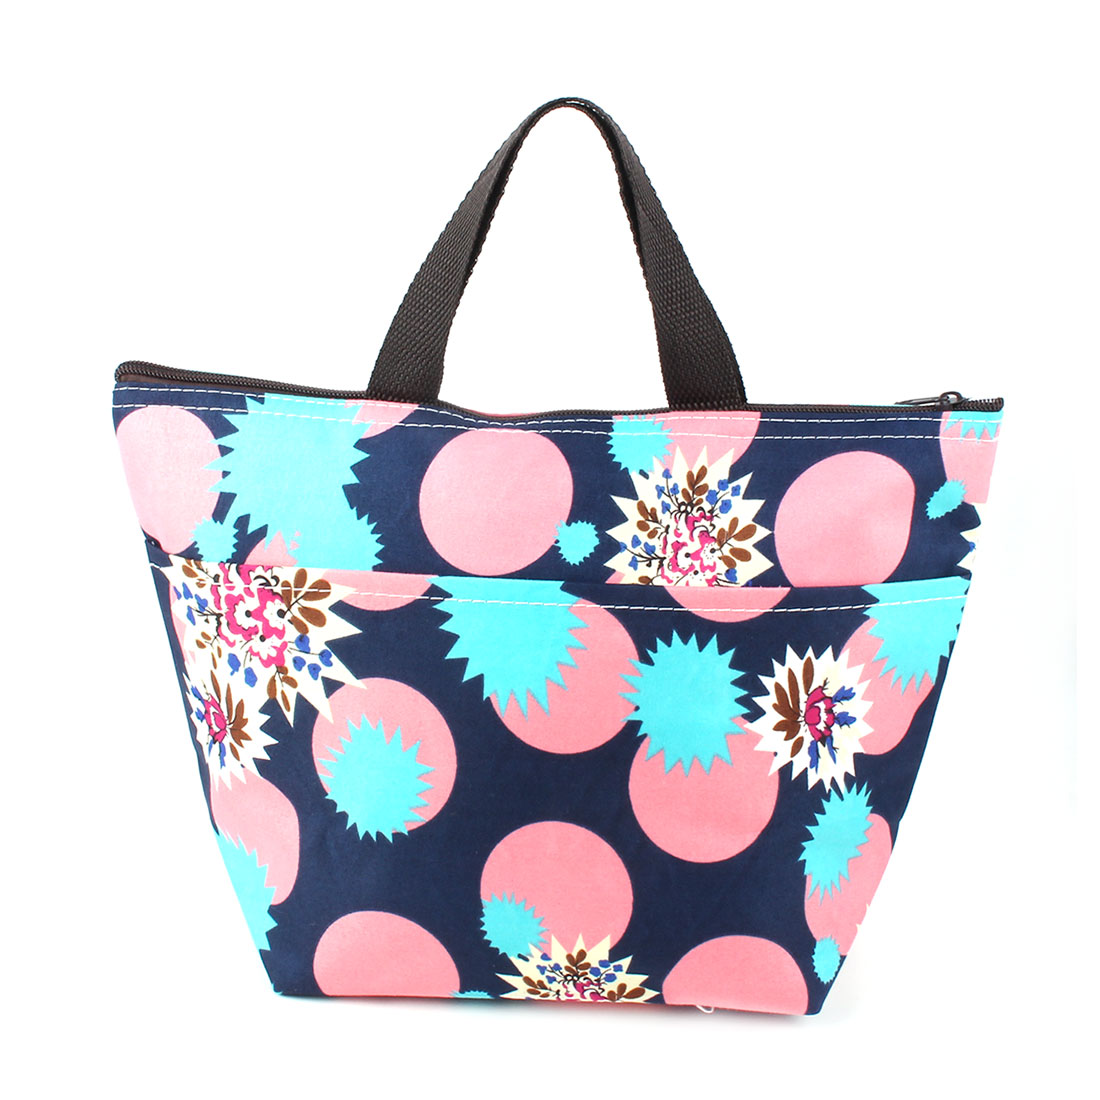 Outdoor Travel Portable Printing Insulated Cooler Lunch Carry Tote Bag Picnic Container